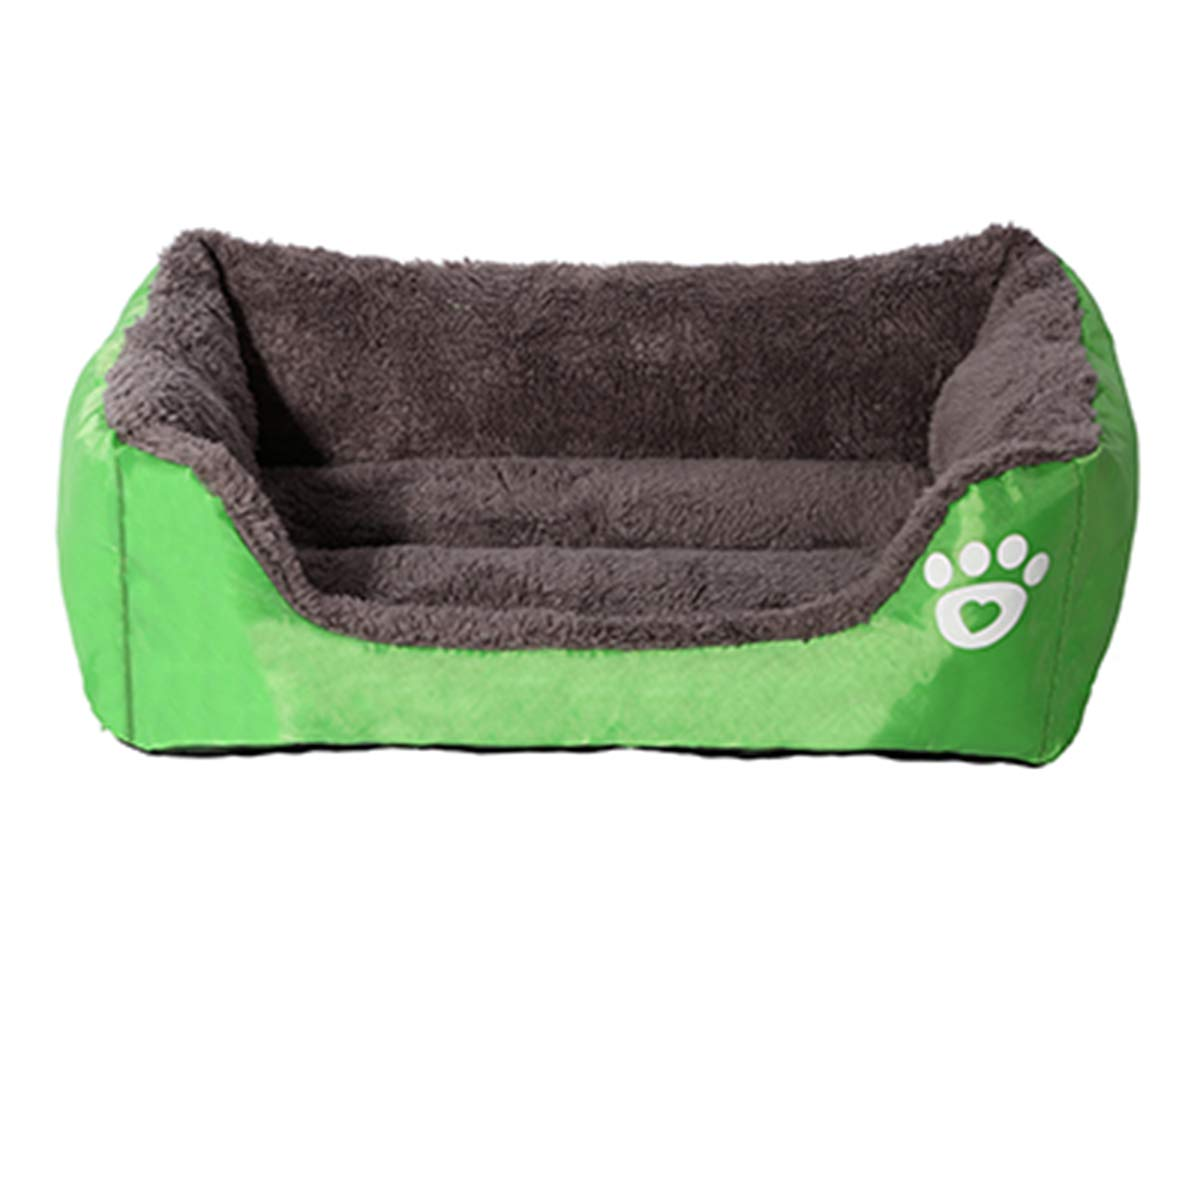 Green XXL green XXL PETFDH Pet Dog Bed Warming Dog House Soft Material Nest Dog Baskets Fall and Winter Warm Kennel for Cat Puppy Green XXL